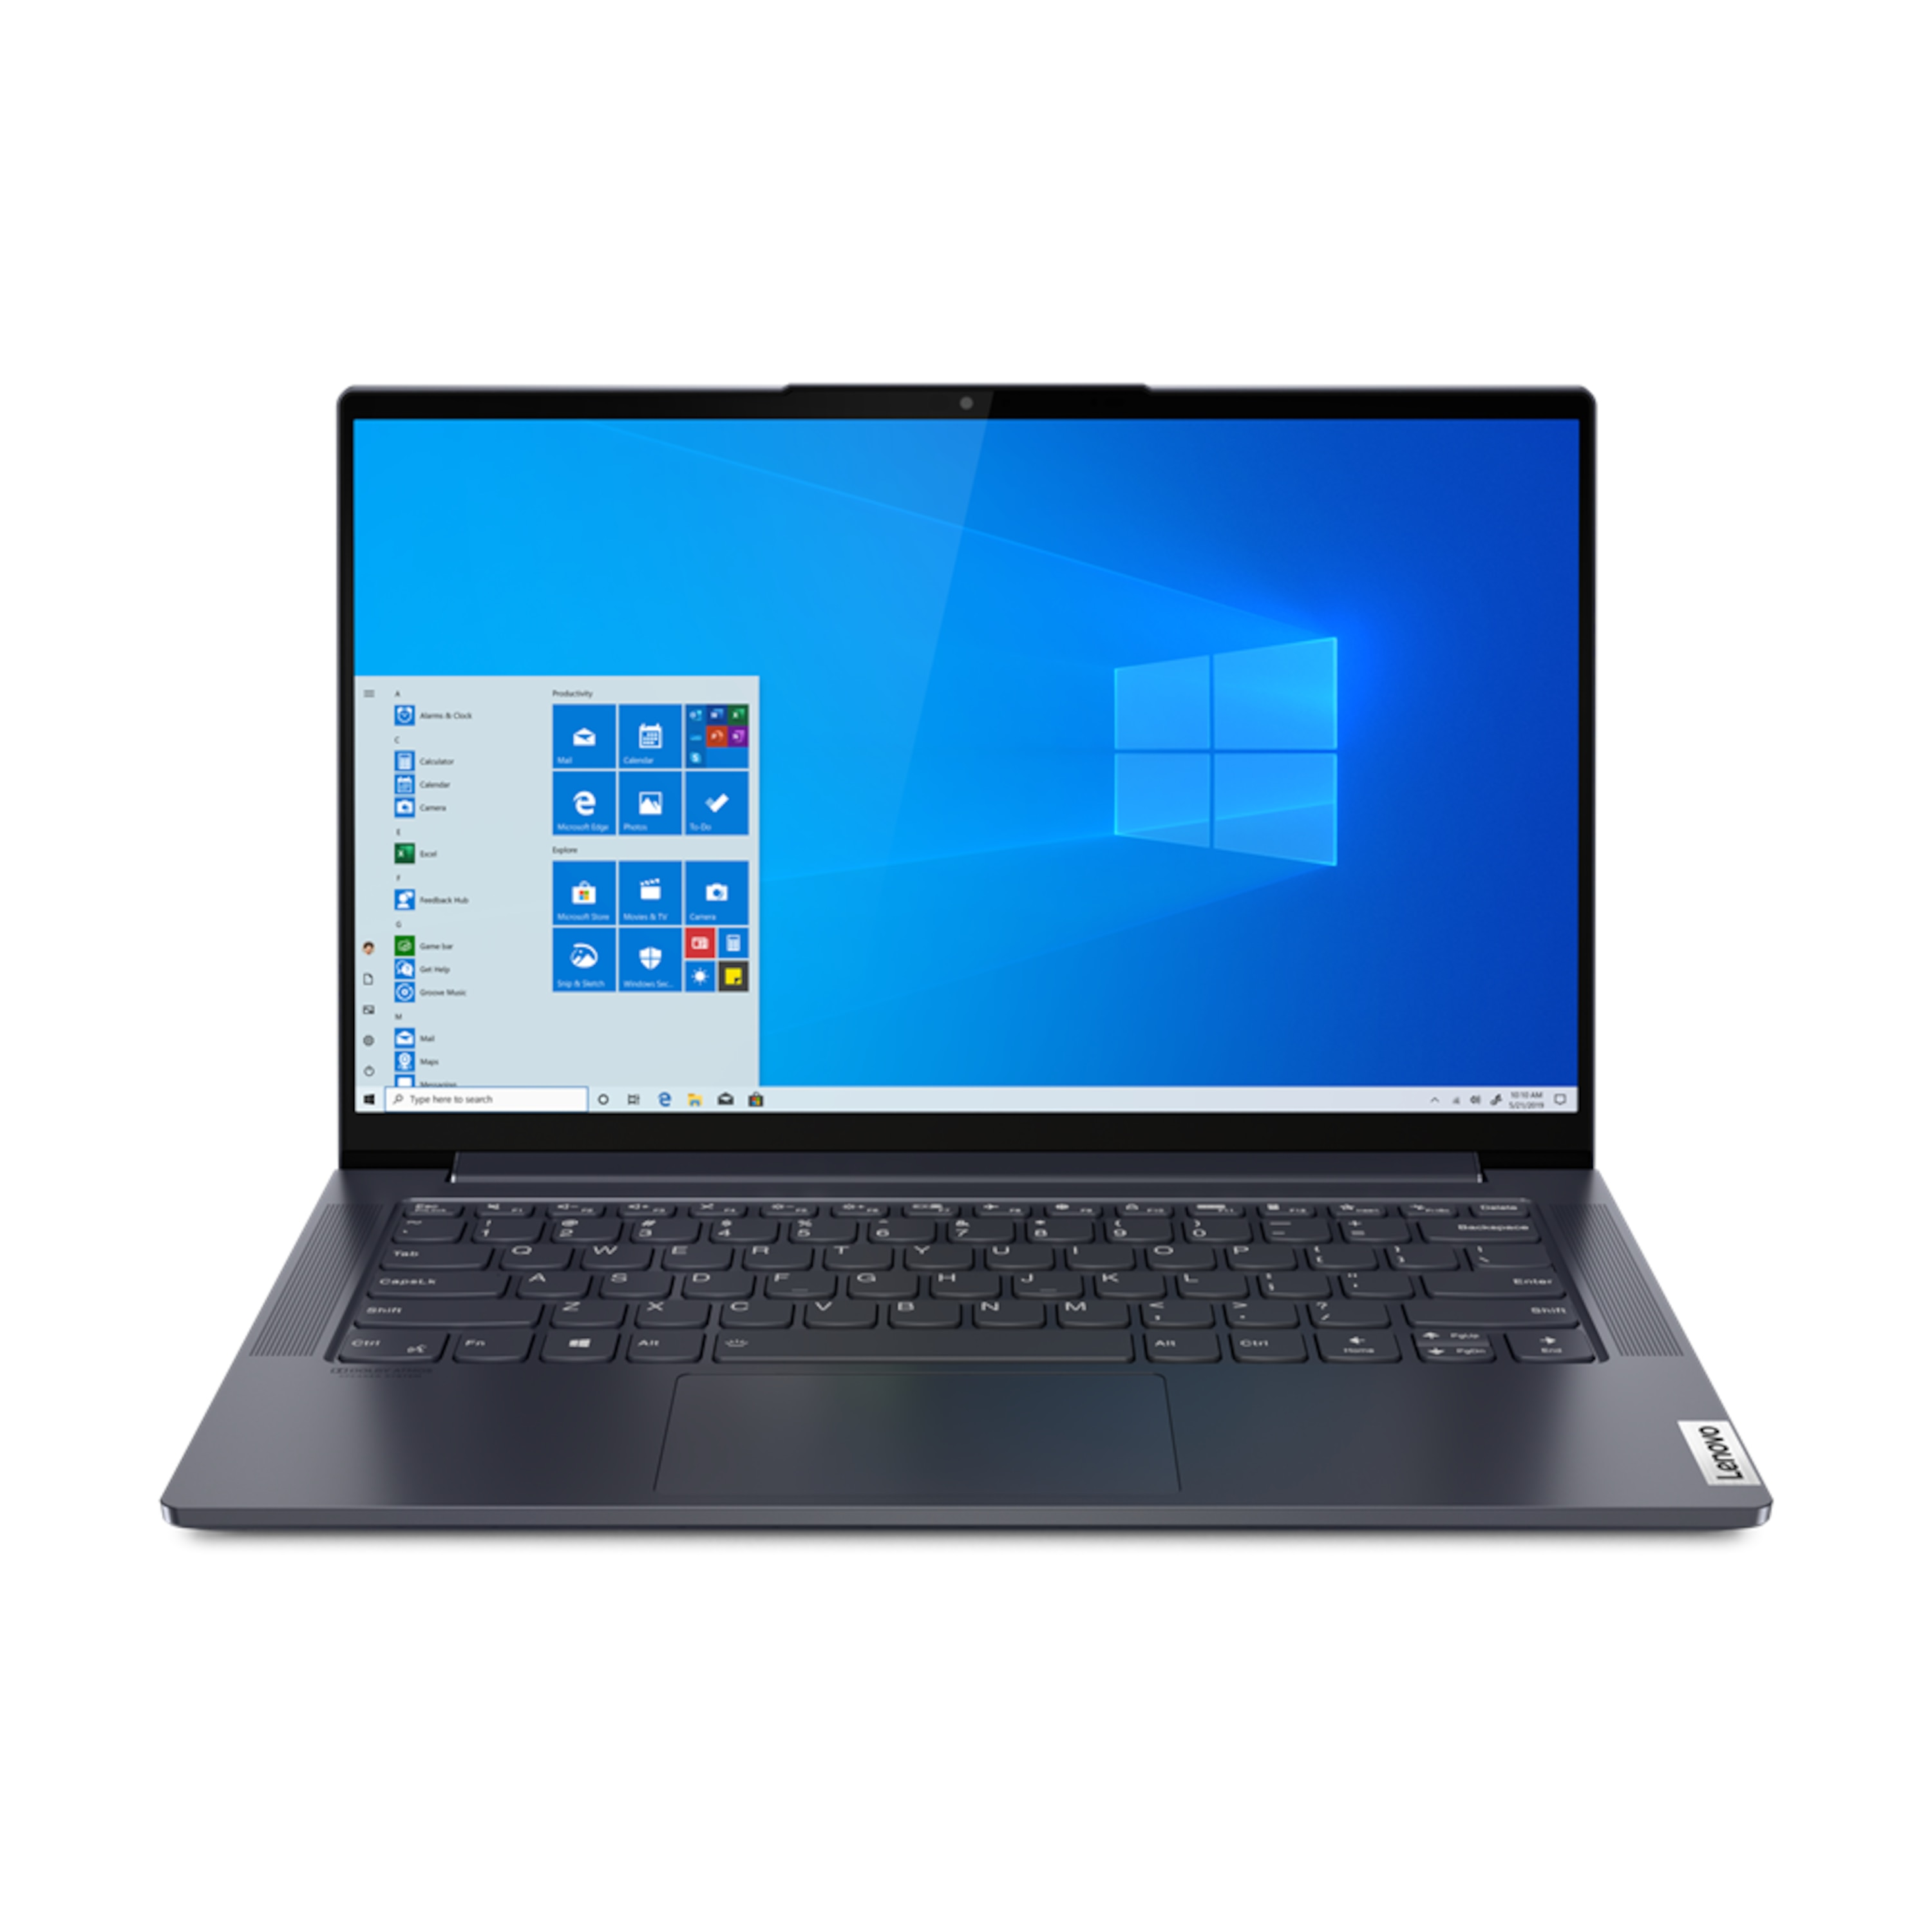 LENOVO Yoga™ Slim 7 14IIL05, Intel® Core™ i7-1065G7, Windows 10 Home, 35,5 cm (14) FHD Display, 512 GB PCIe SSD, 16 GB RAM, Notebook